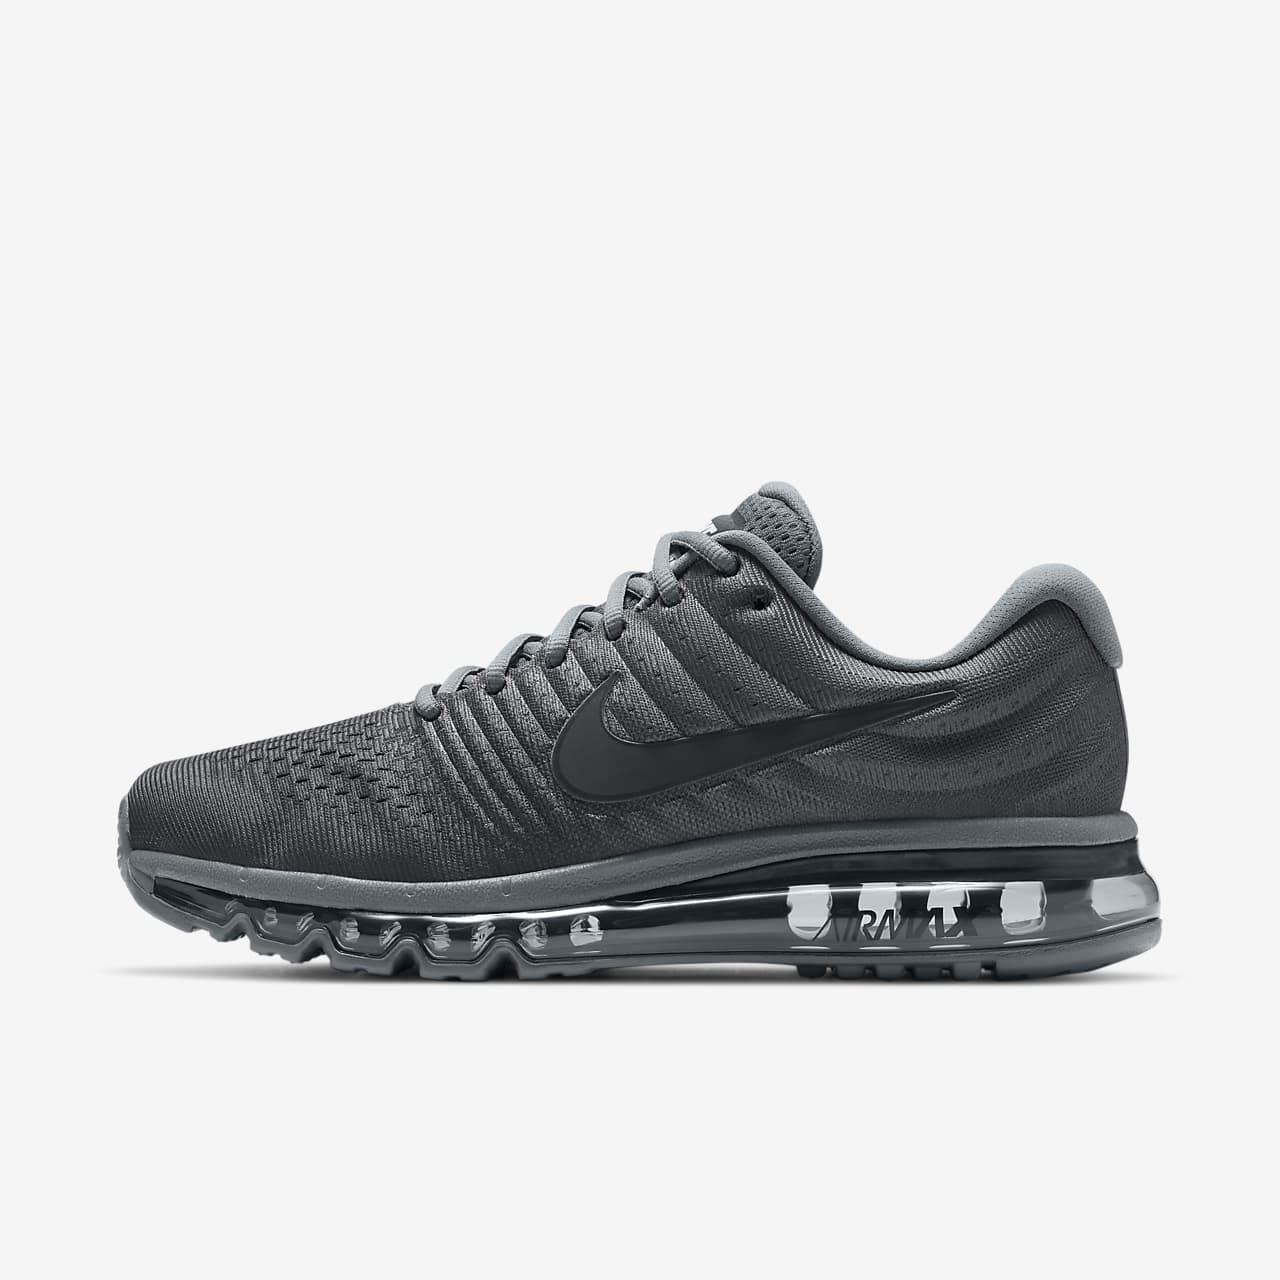 8cecc0d98e86 Nike Air Max 2017 Men s Shoe. Nike.com